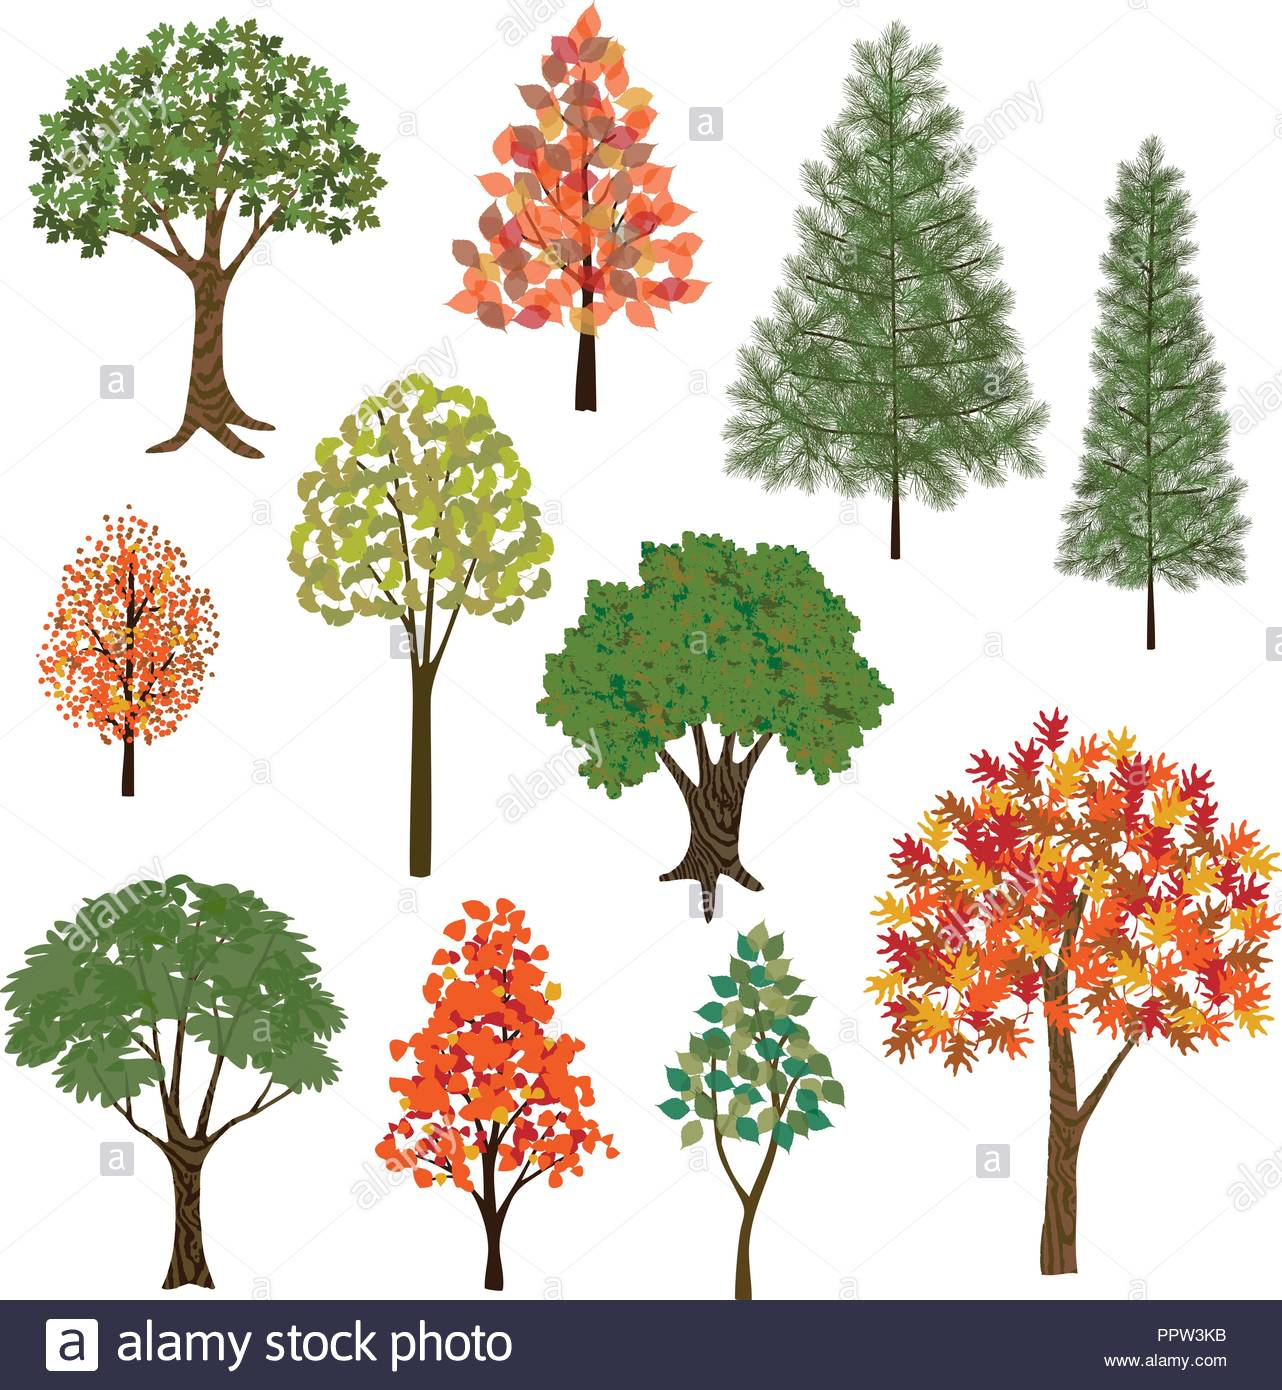 Hand Drawn Trees Vector Clipart Stock Vector Art Illustration